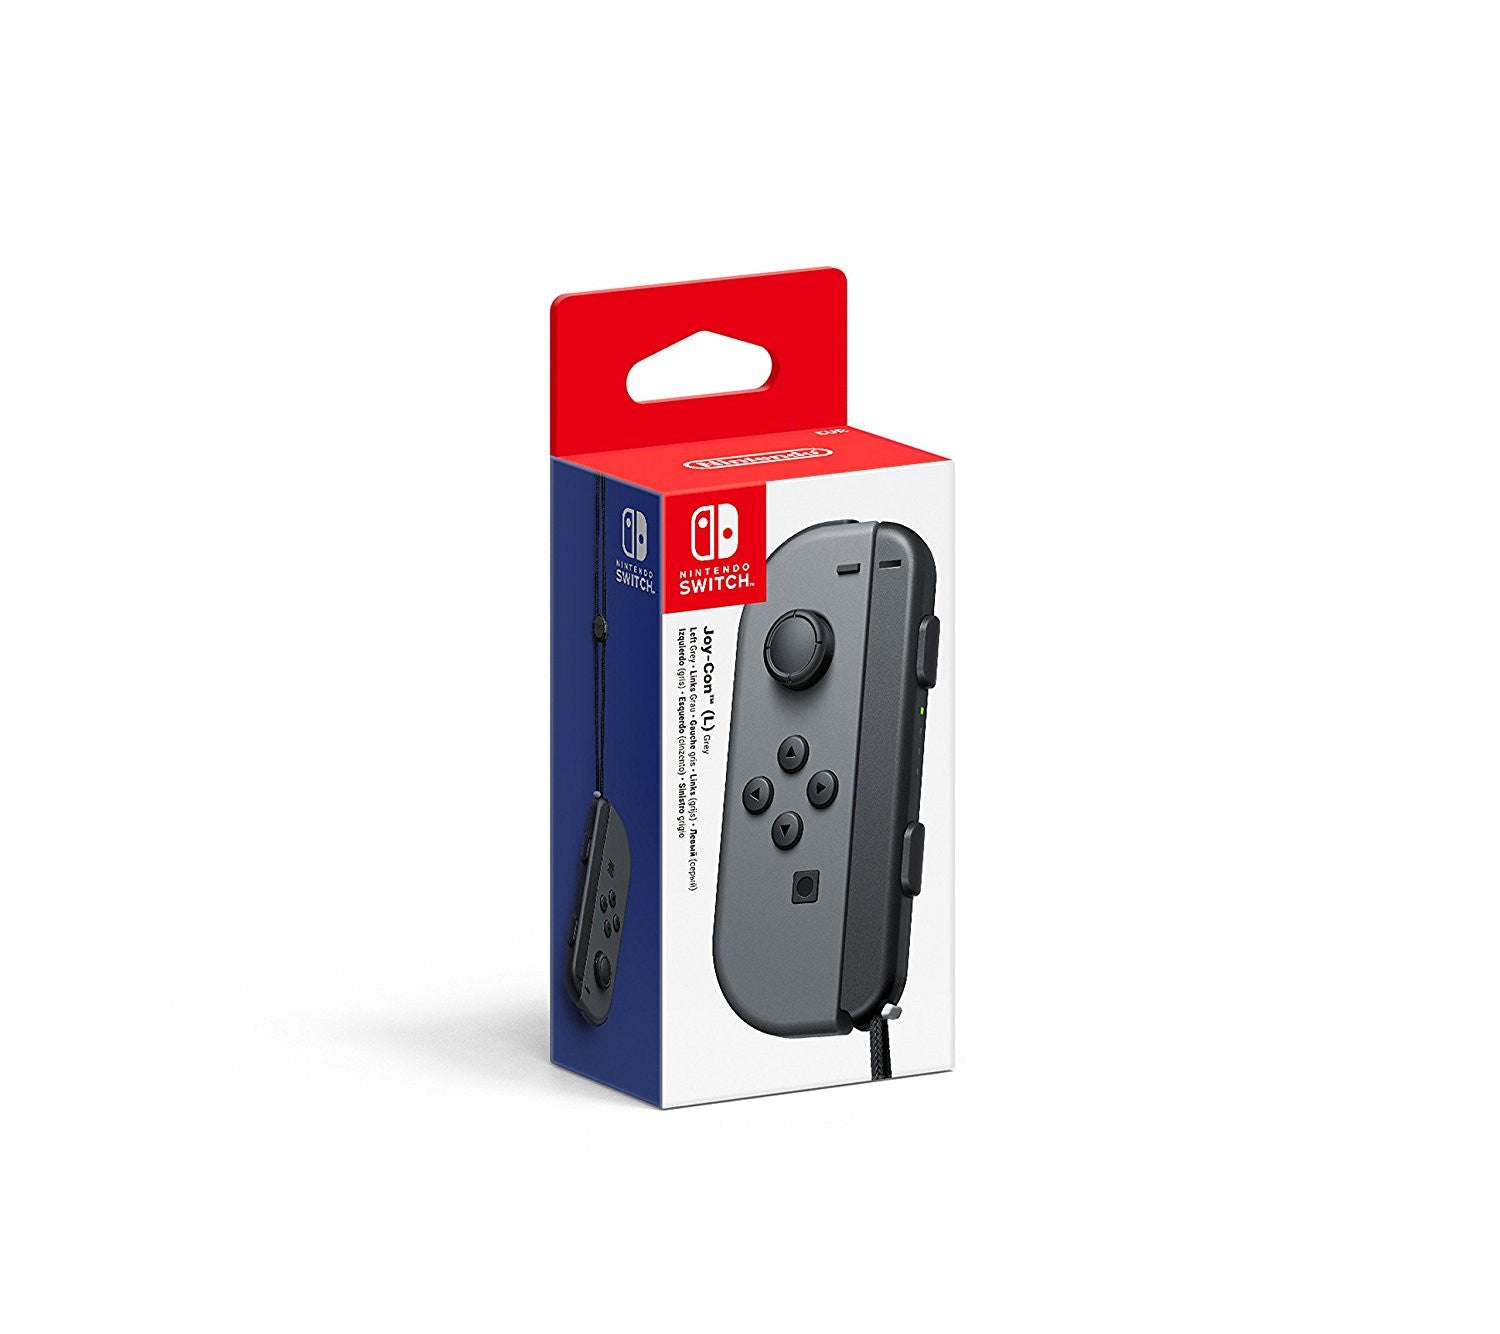 Joy-Con Controller Left - Grey (Nintendo Switch) - Console Accessories by Nintendo The Chelsea Gamer